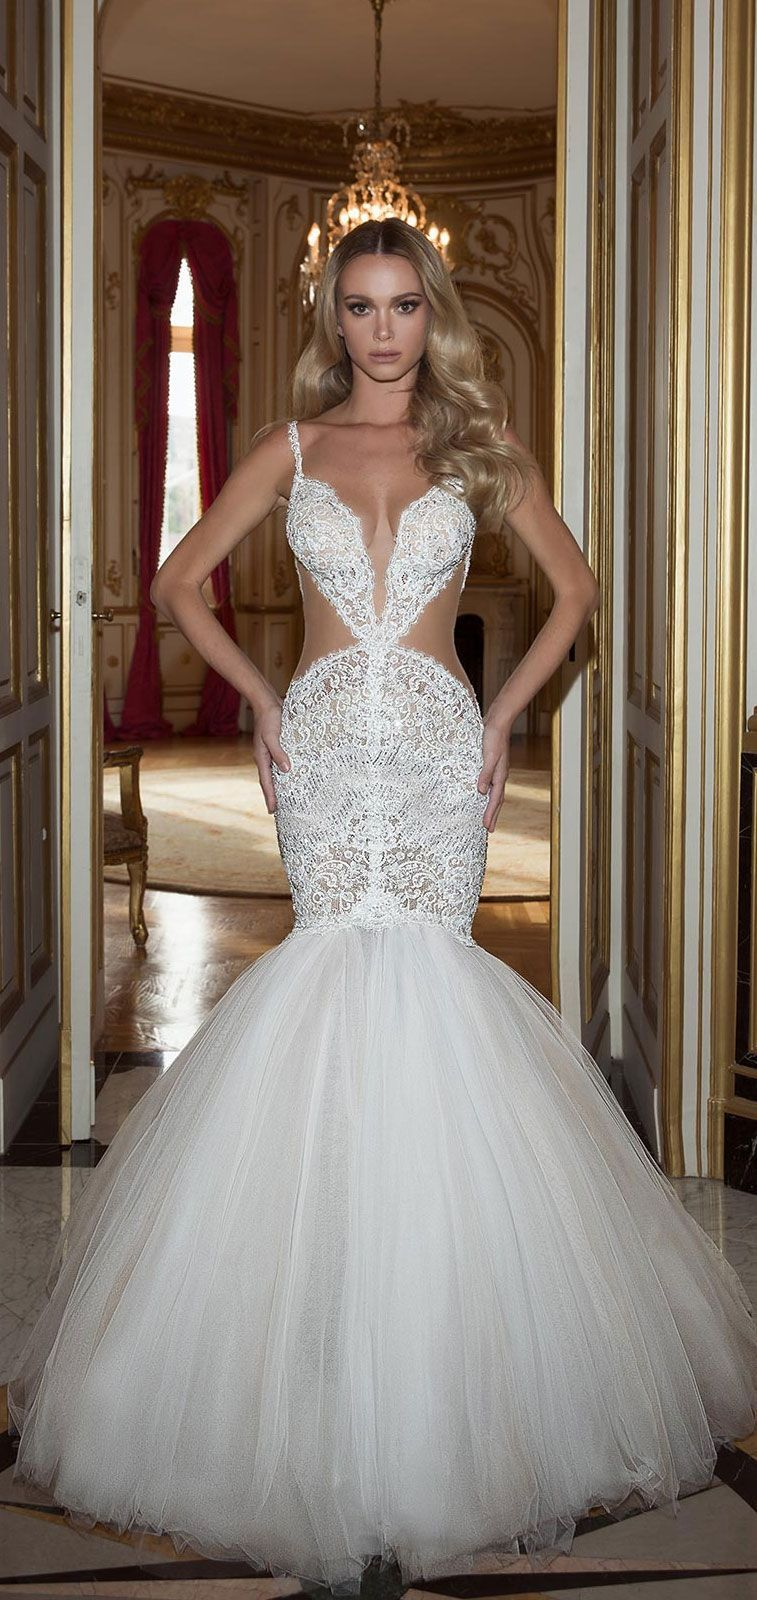 Oved cohen wedding dress a pipe dream pinterest wedding